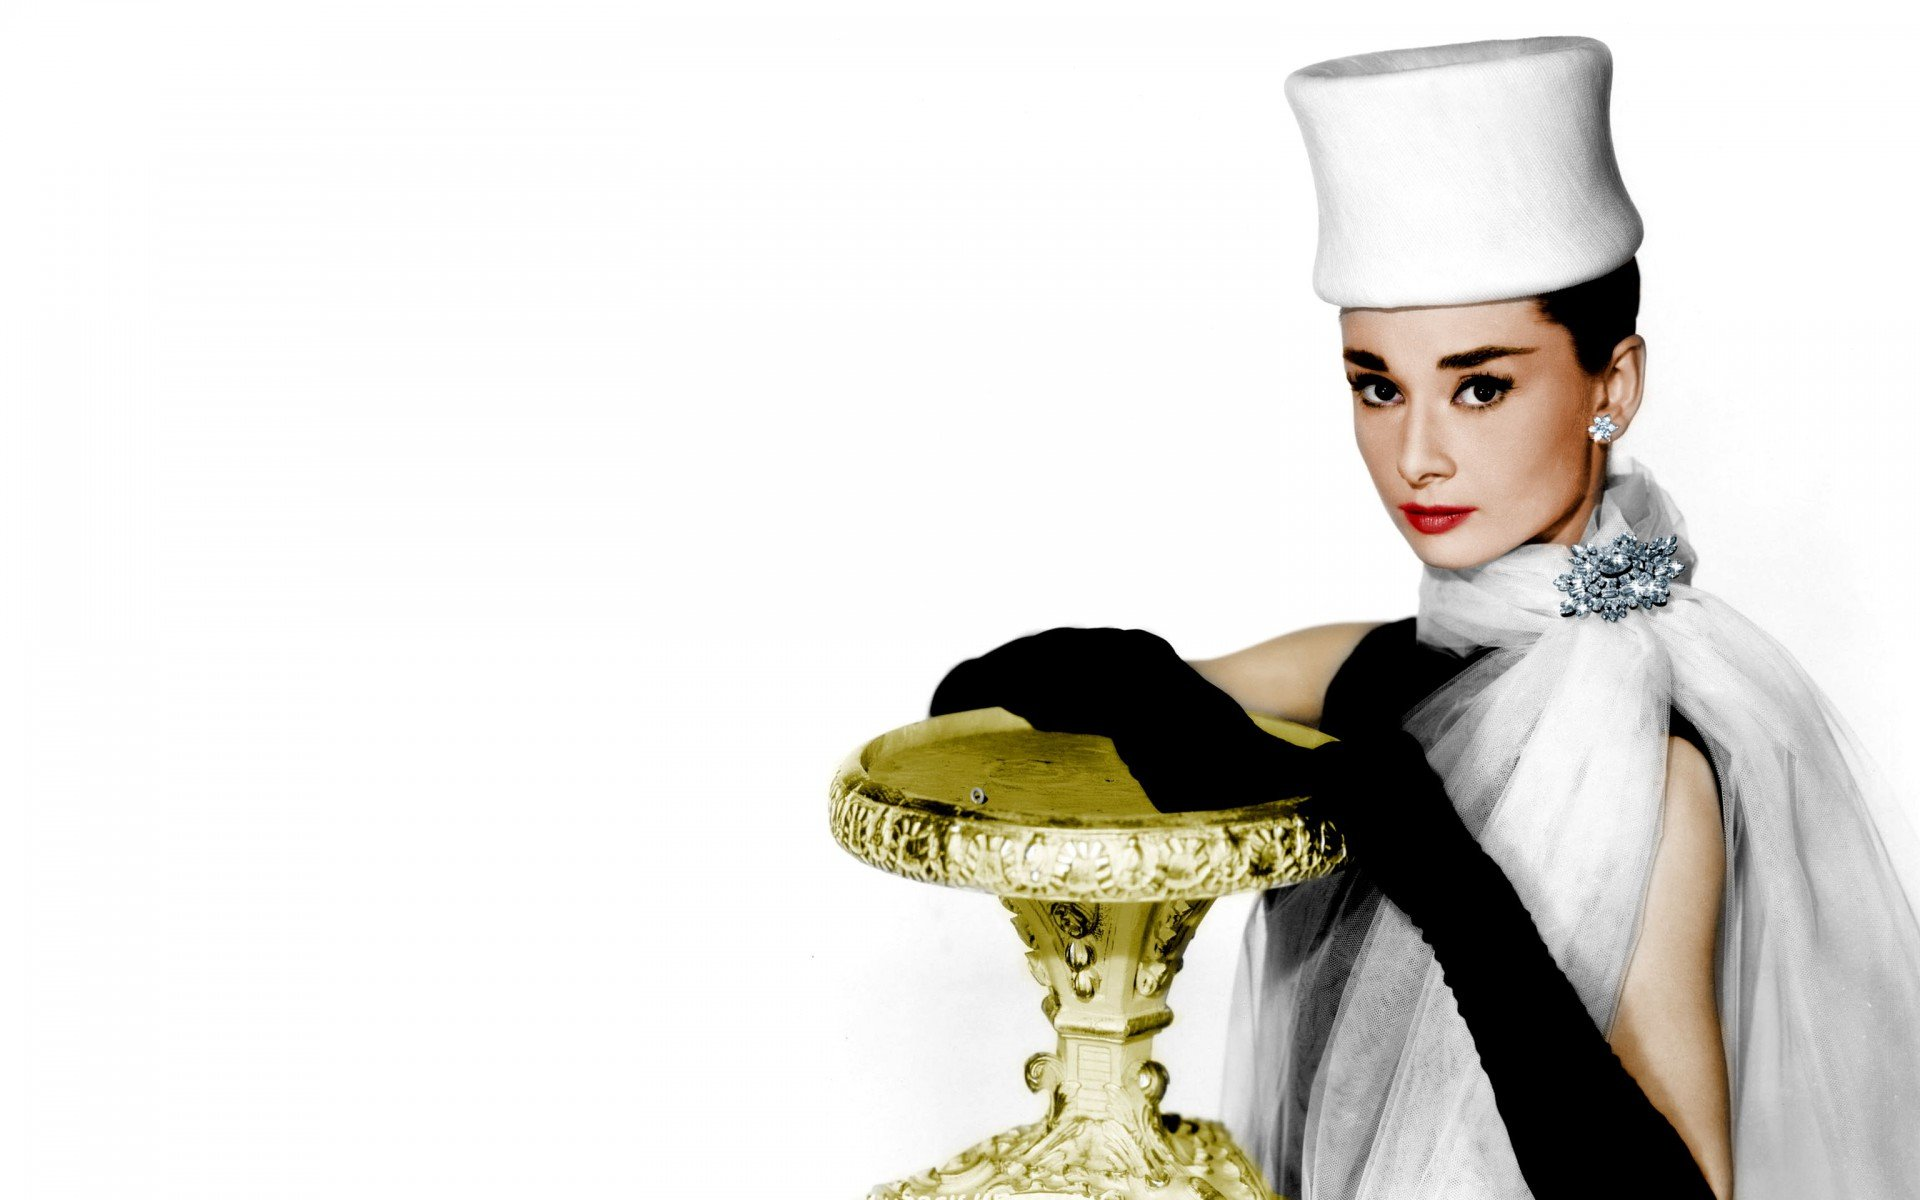 Wallpaper Audrey Hepburn Wallpaper 1920x1200